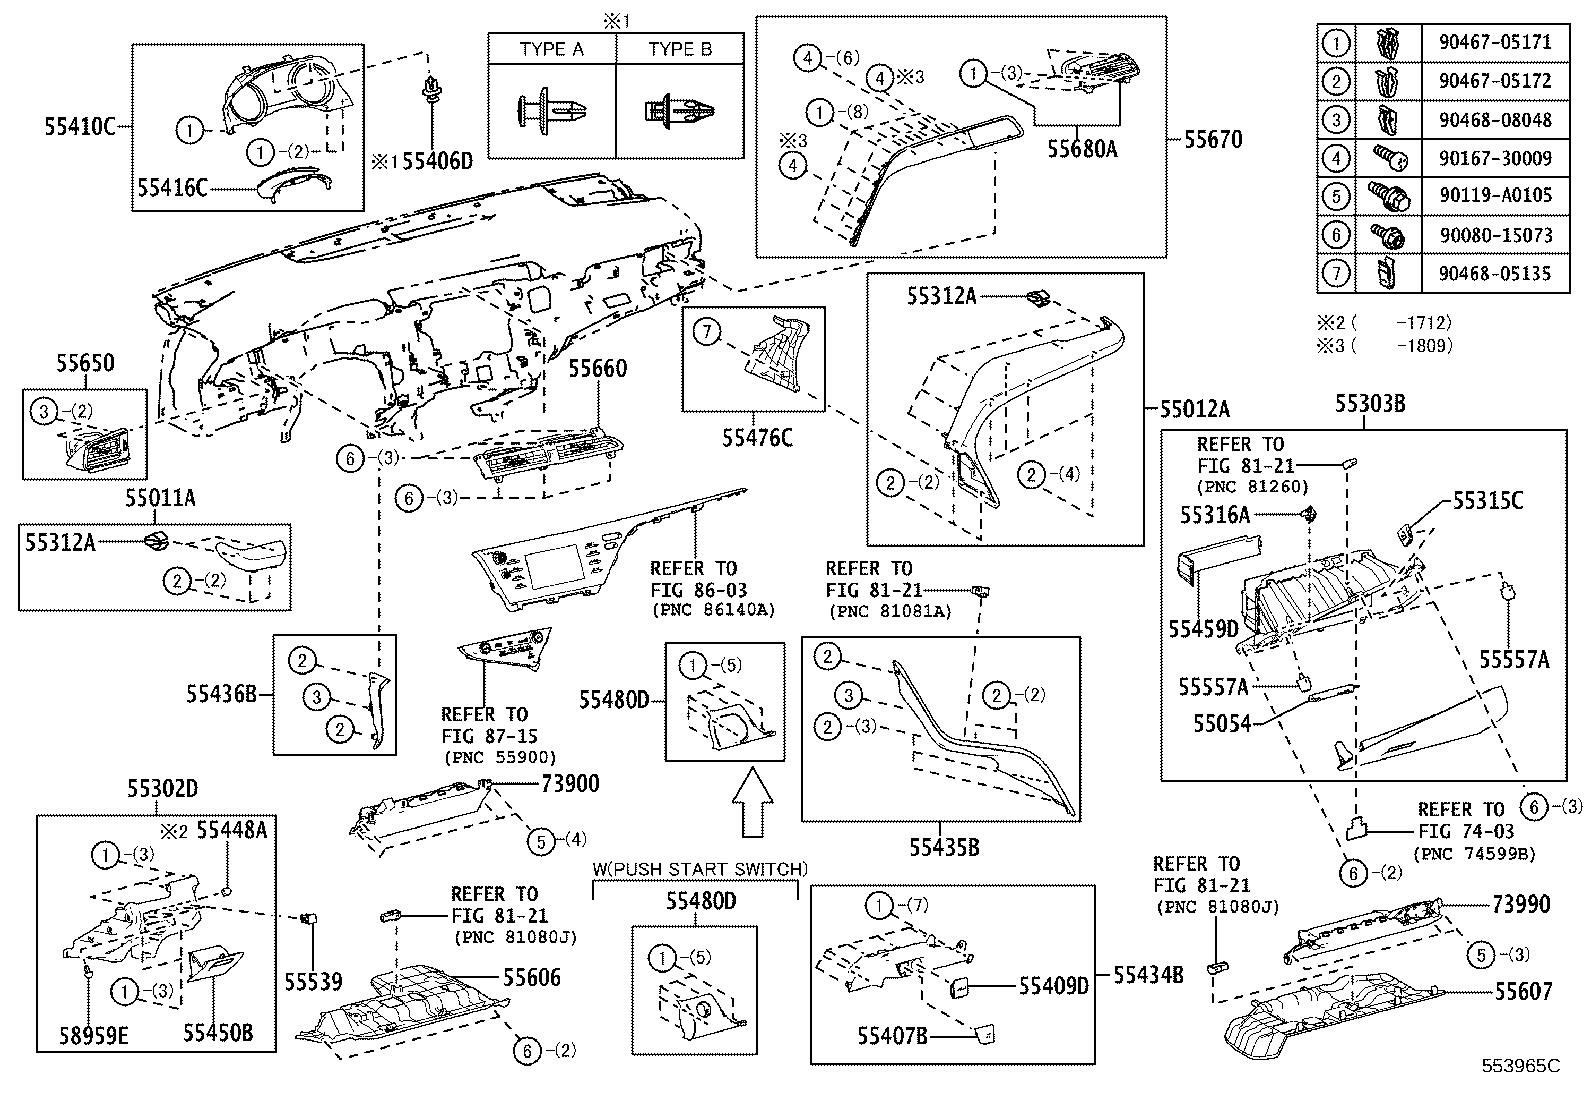 Toyota Camry Brace sub-assembly, instrument panel to cowl